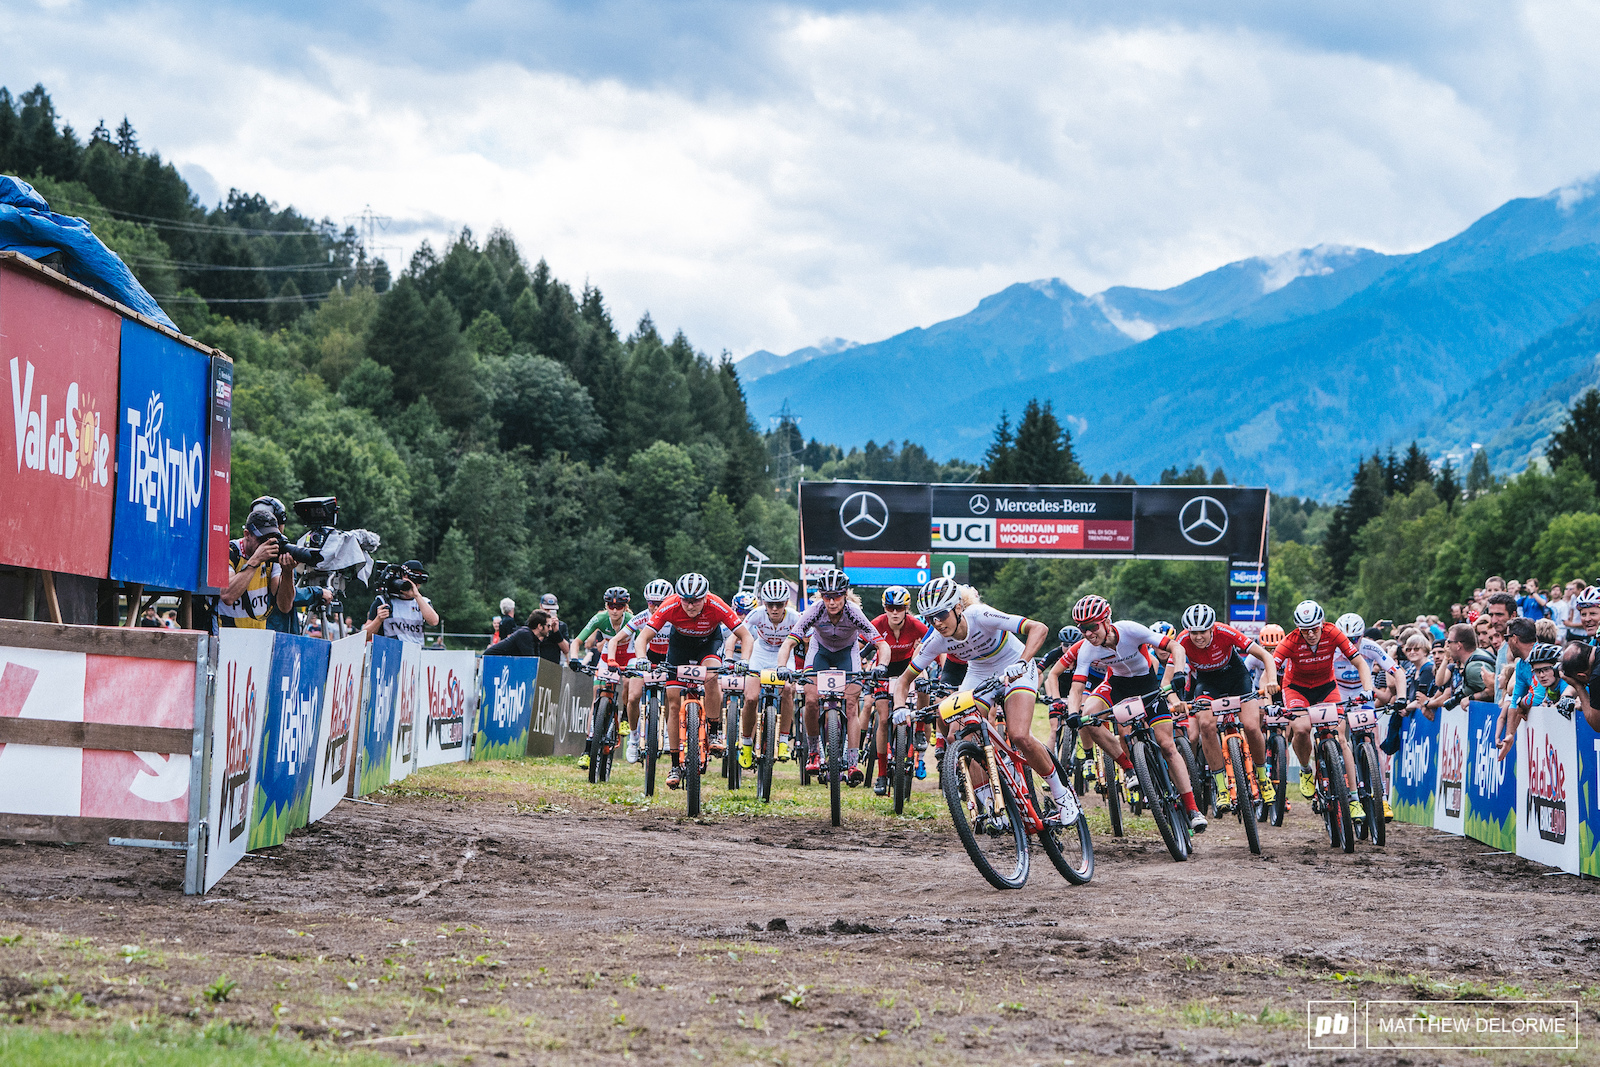 The riders come off the start hot and don 39 t back off the throttle until they cross the finish. The wider-taped grass sections provide plenty of opportunity for passing. If you are a fan coming out for a bit of a quick racing fix STXC serves up plenty of action.